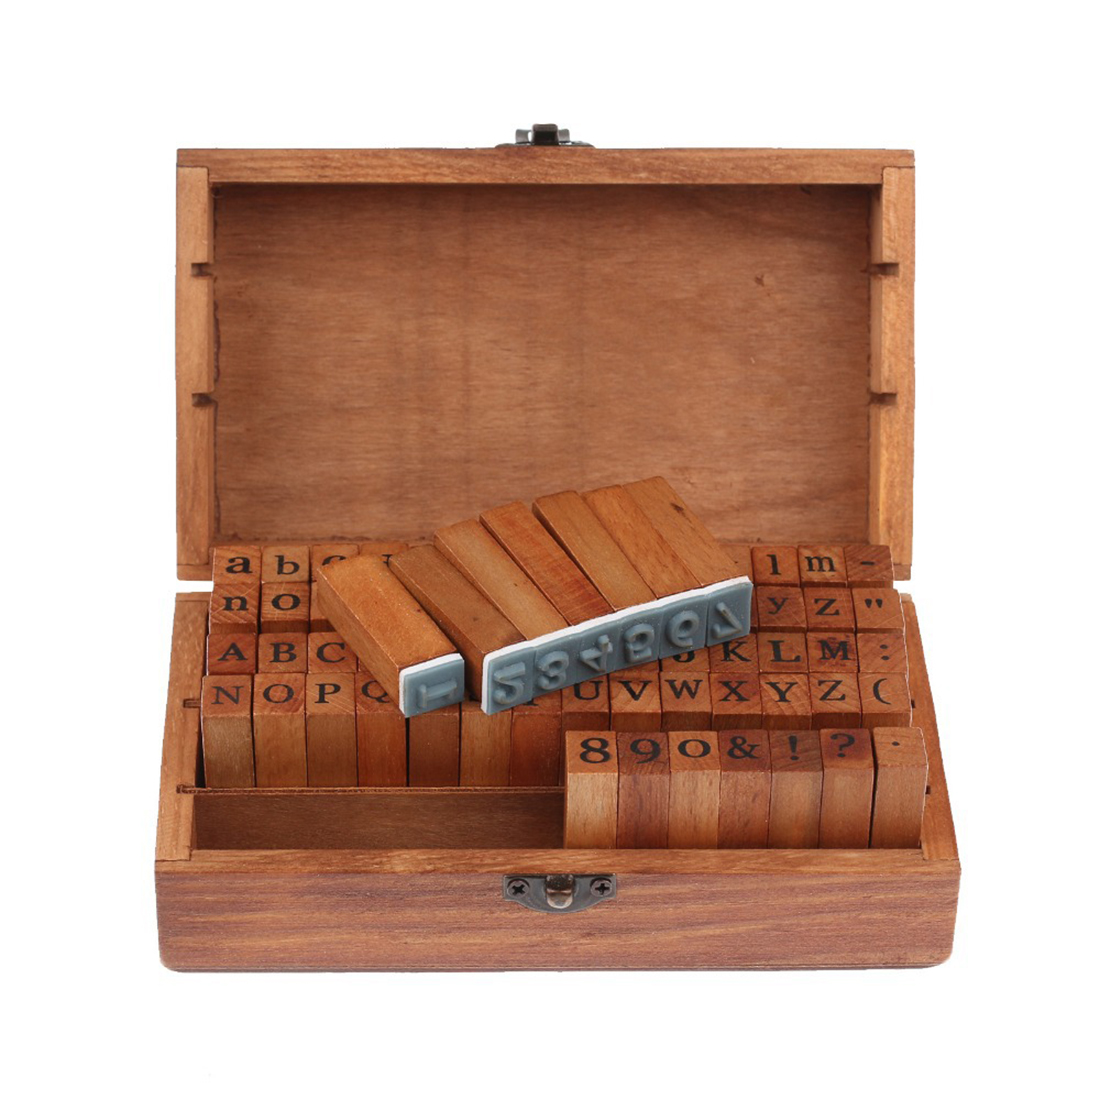 Nice 70pcs Vintage DIY Number And Alphabet Letter Wood Rubber Stamps Set With Wooden Box For Teaching And Play Games